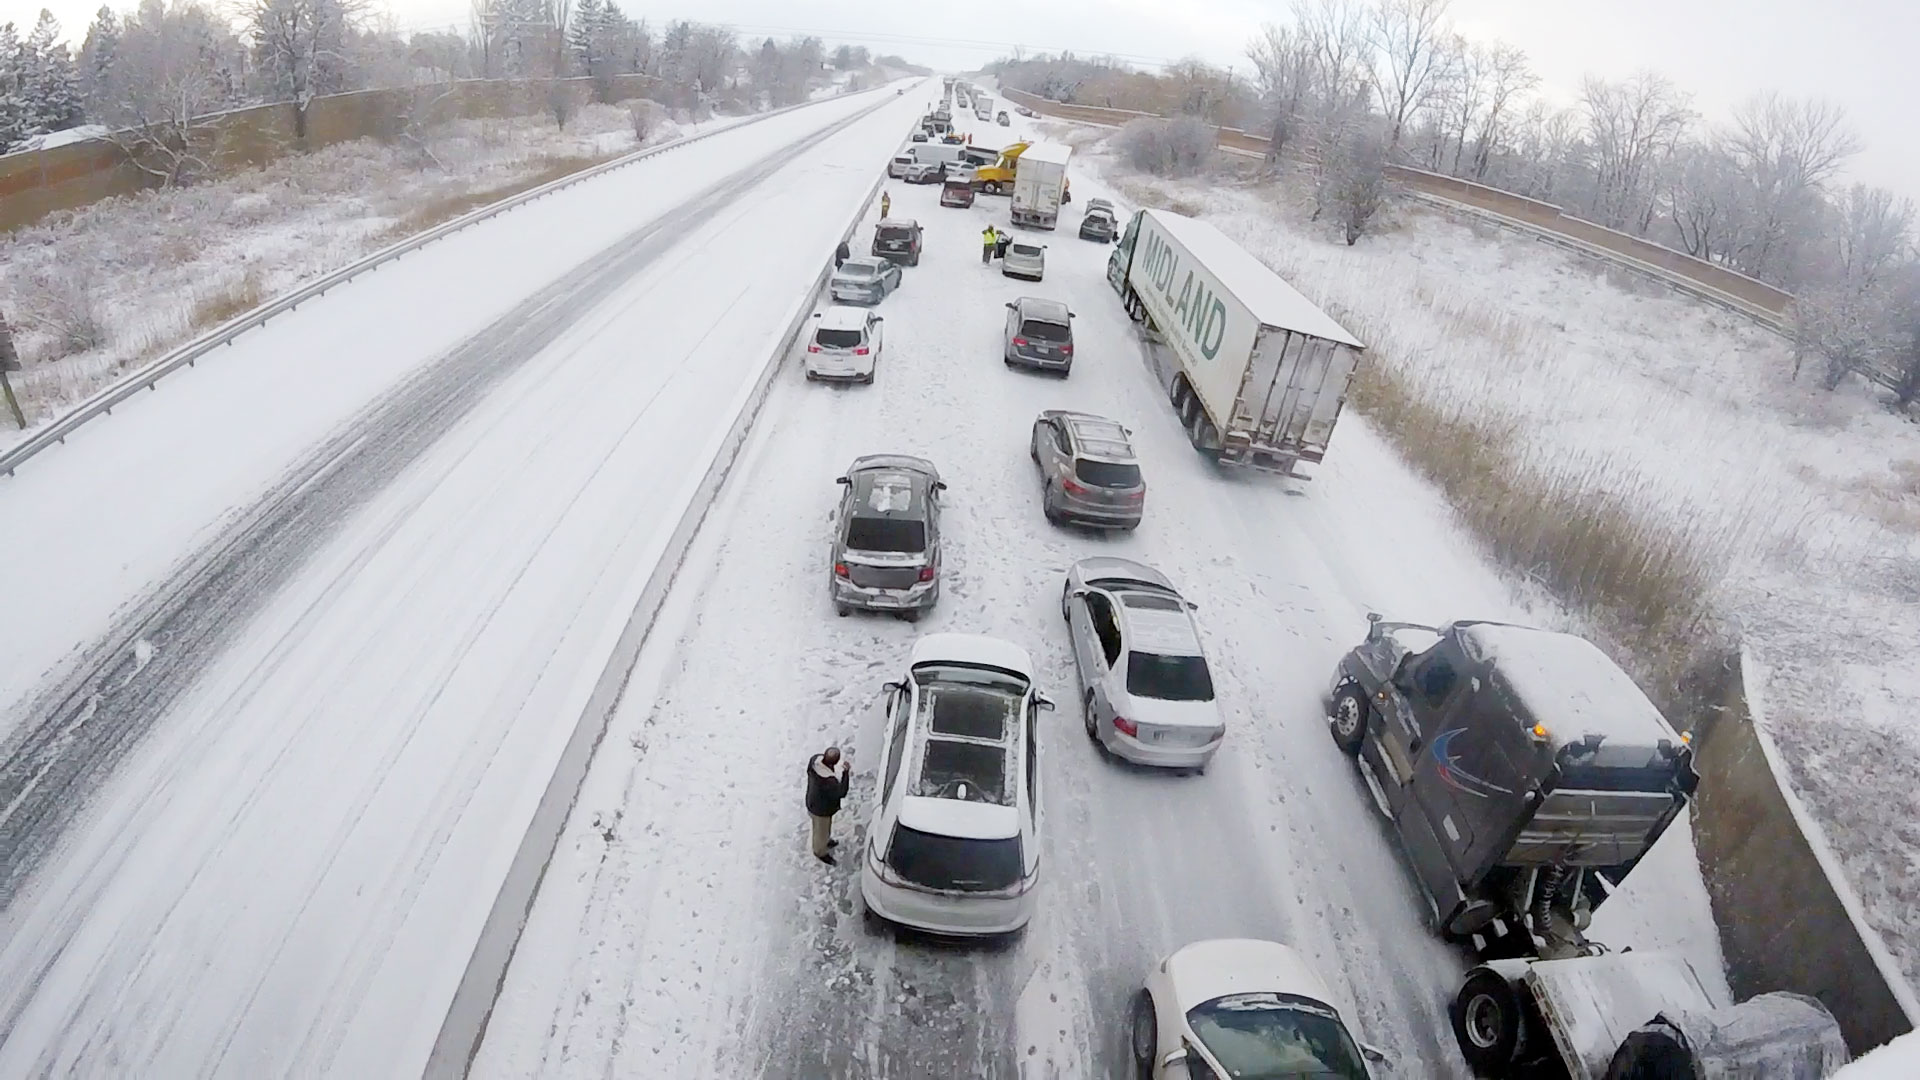 Highway 401 reopens in Bowmanville following crashes, whiteout conditions